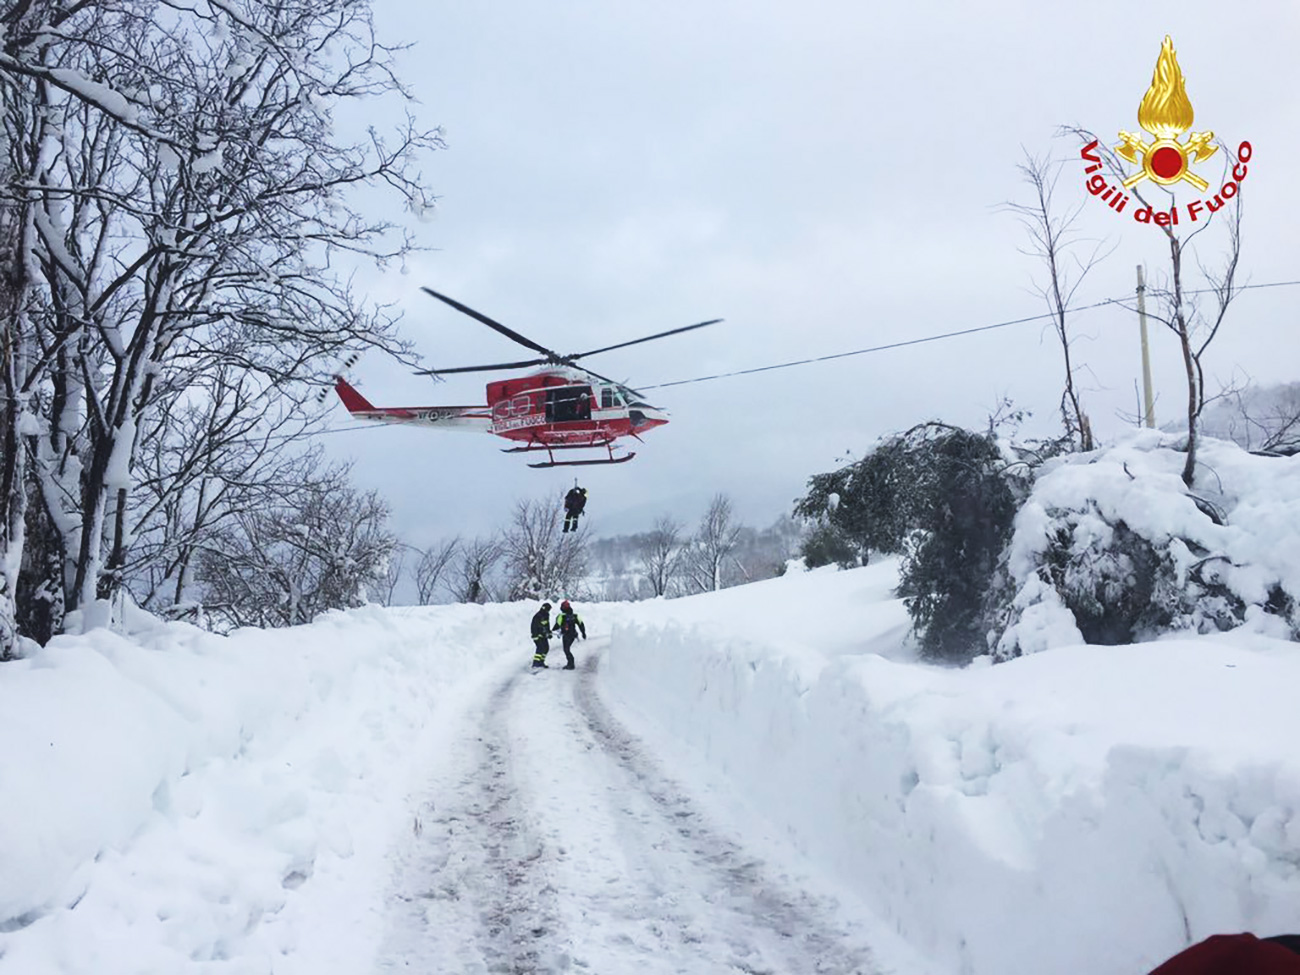 Firefighters and a helicopter during rescue operations near the hotel 'Rigopiano', which was buried in an avalanche, in the region of Abruzzo near Farindola, Italy, Jan. 19, 2017. A avalanche caused by an earthquake buried the hotel.